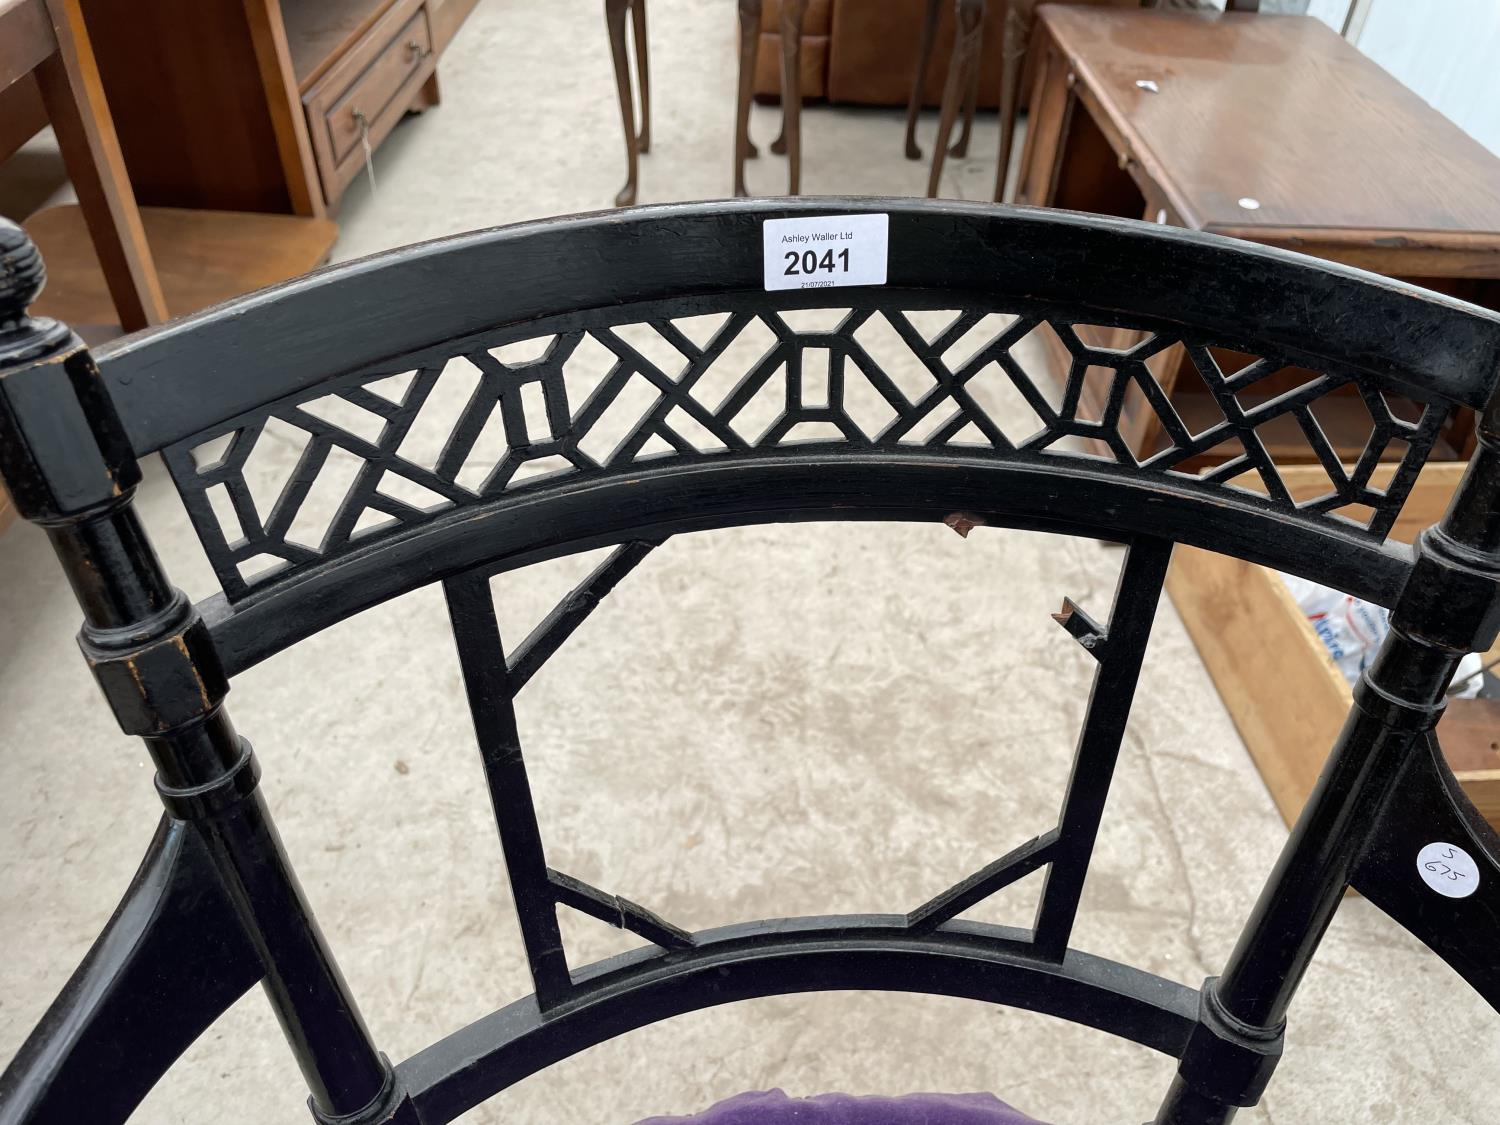 AN ARTS & CRAFTS BLACK PAINTED ELBOW CHAIR A/F - Image 2 of 4